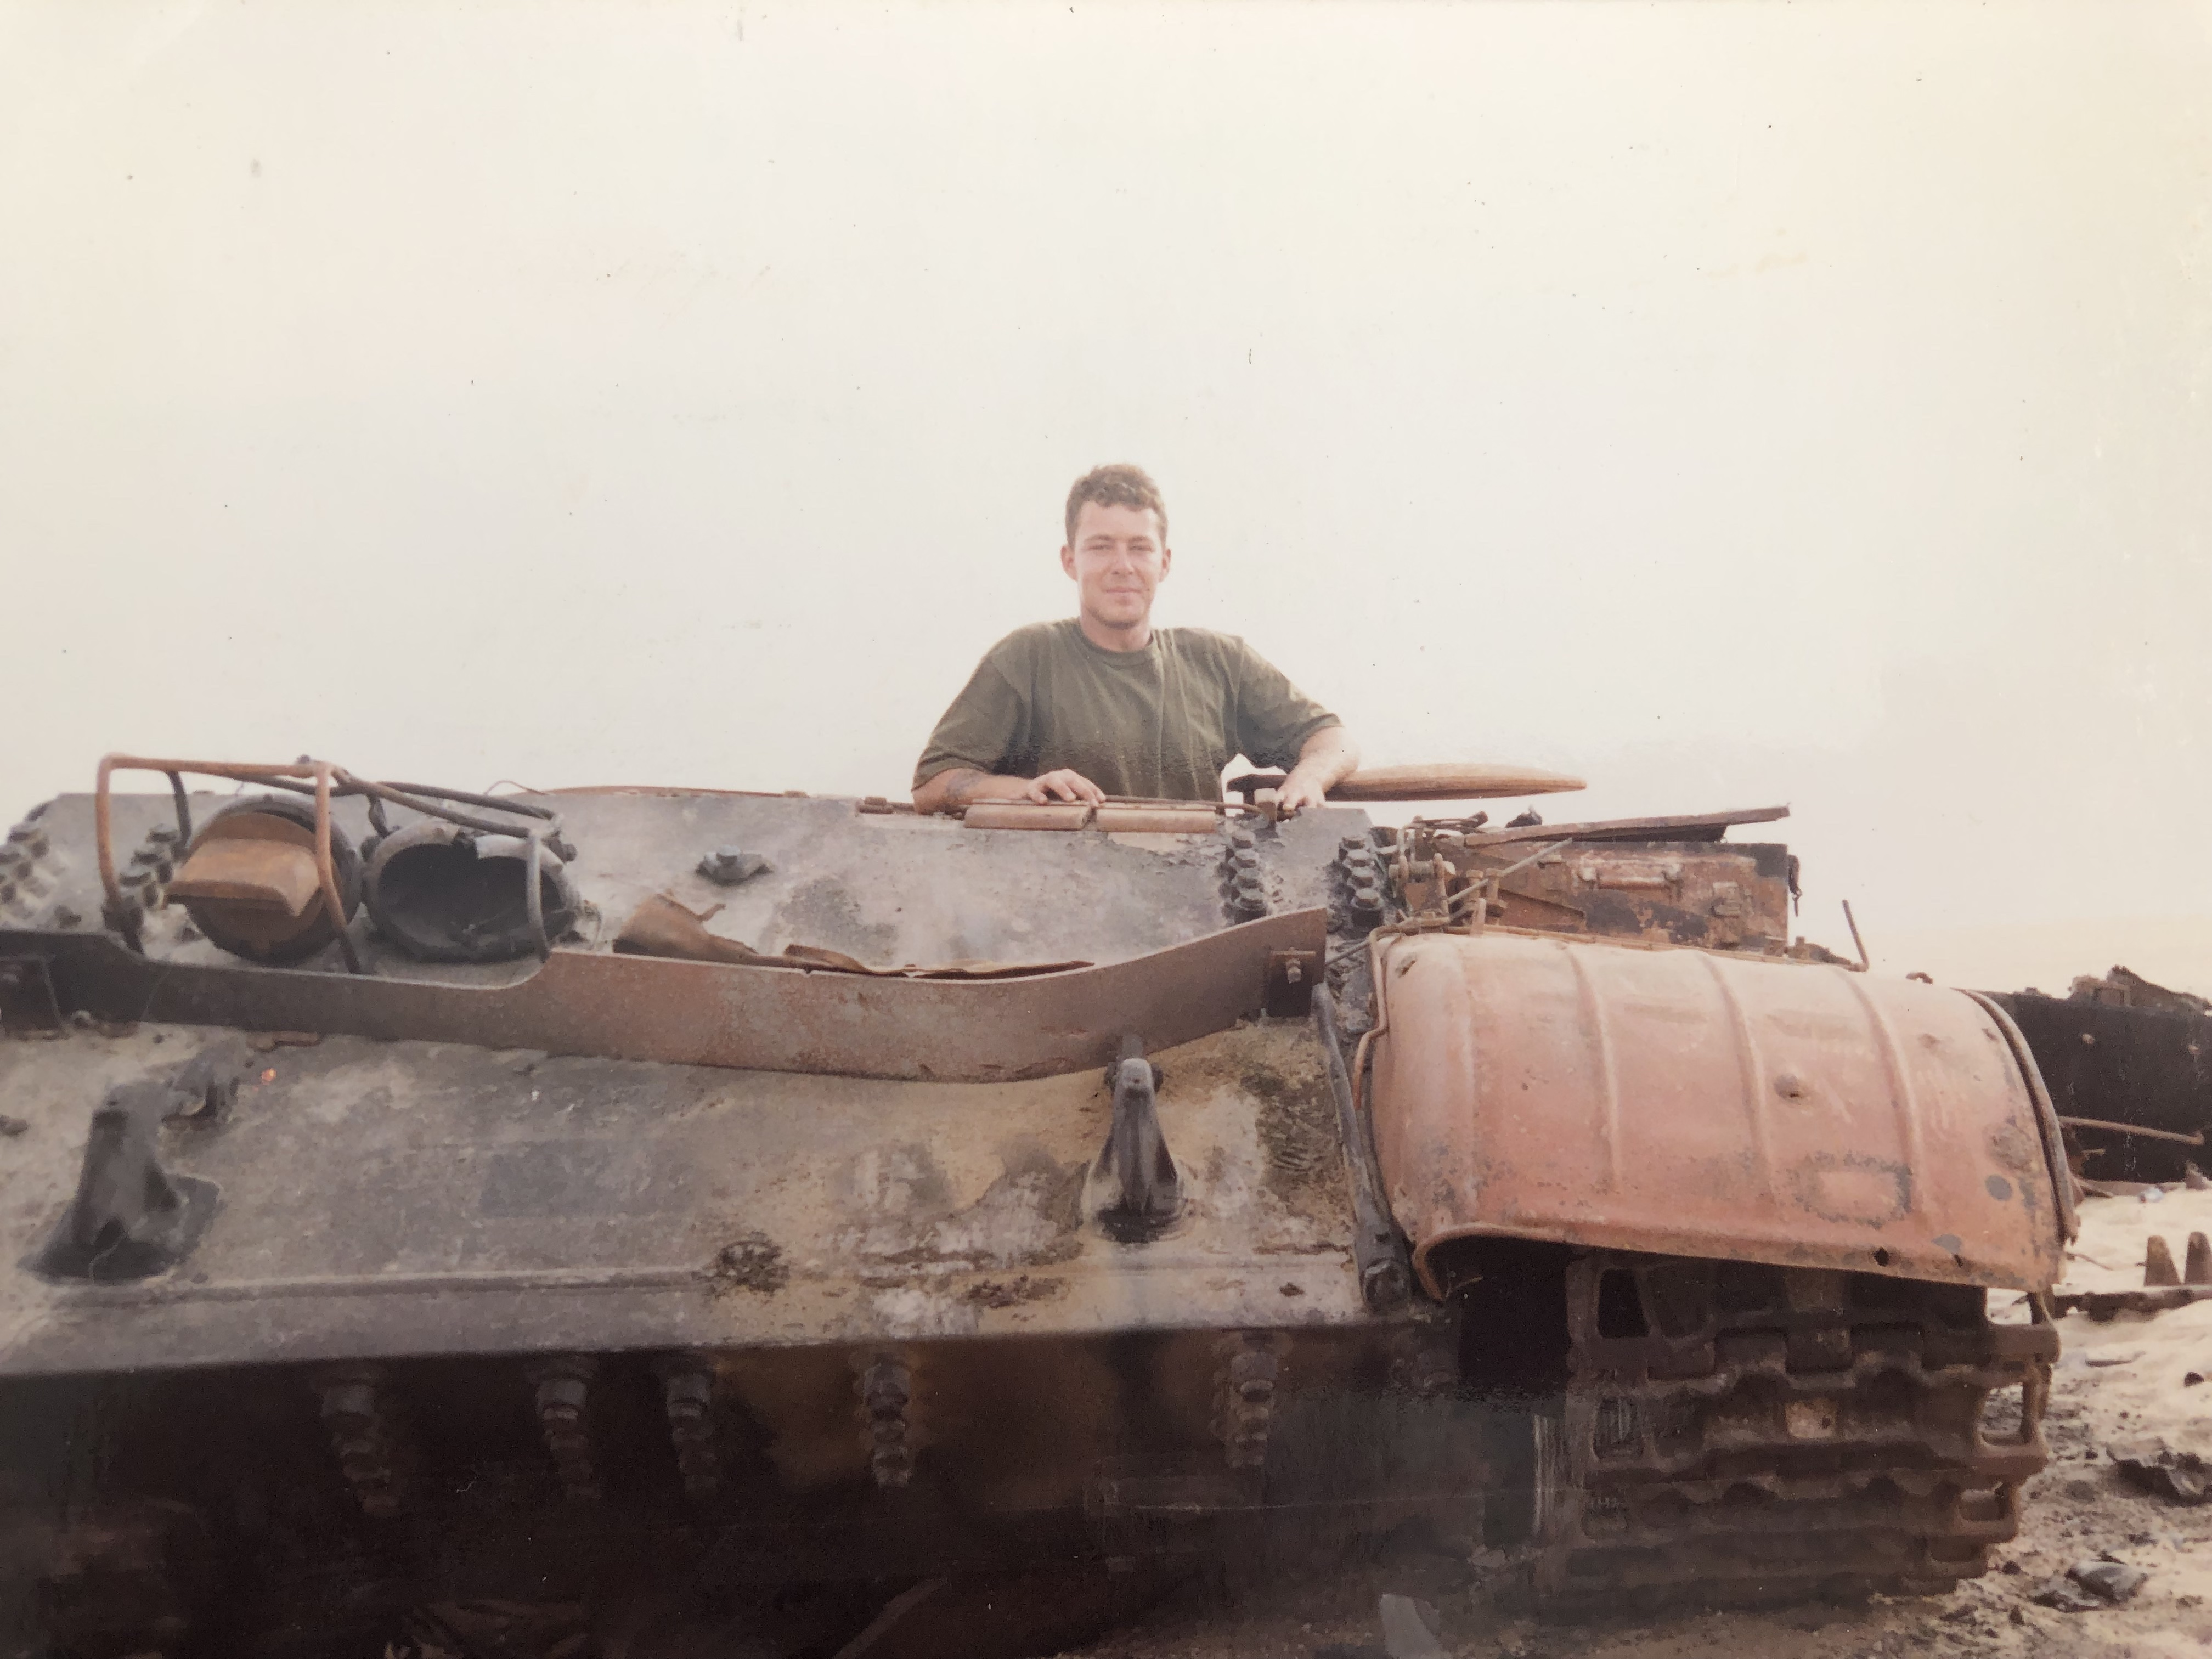 A picture of interviewee John White in a tank in Iraq.